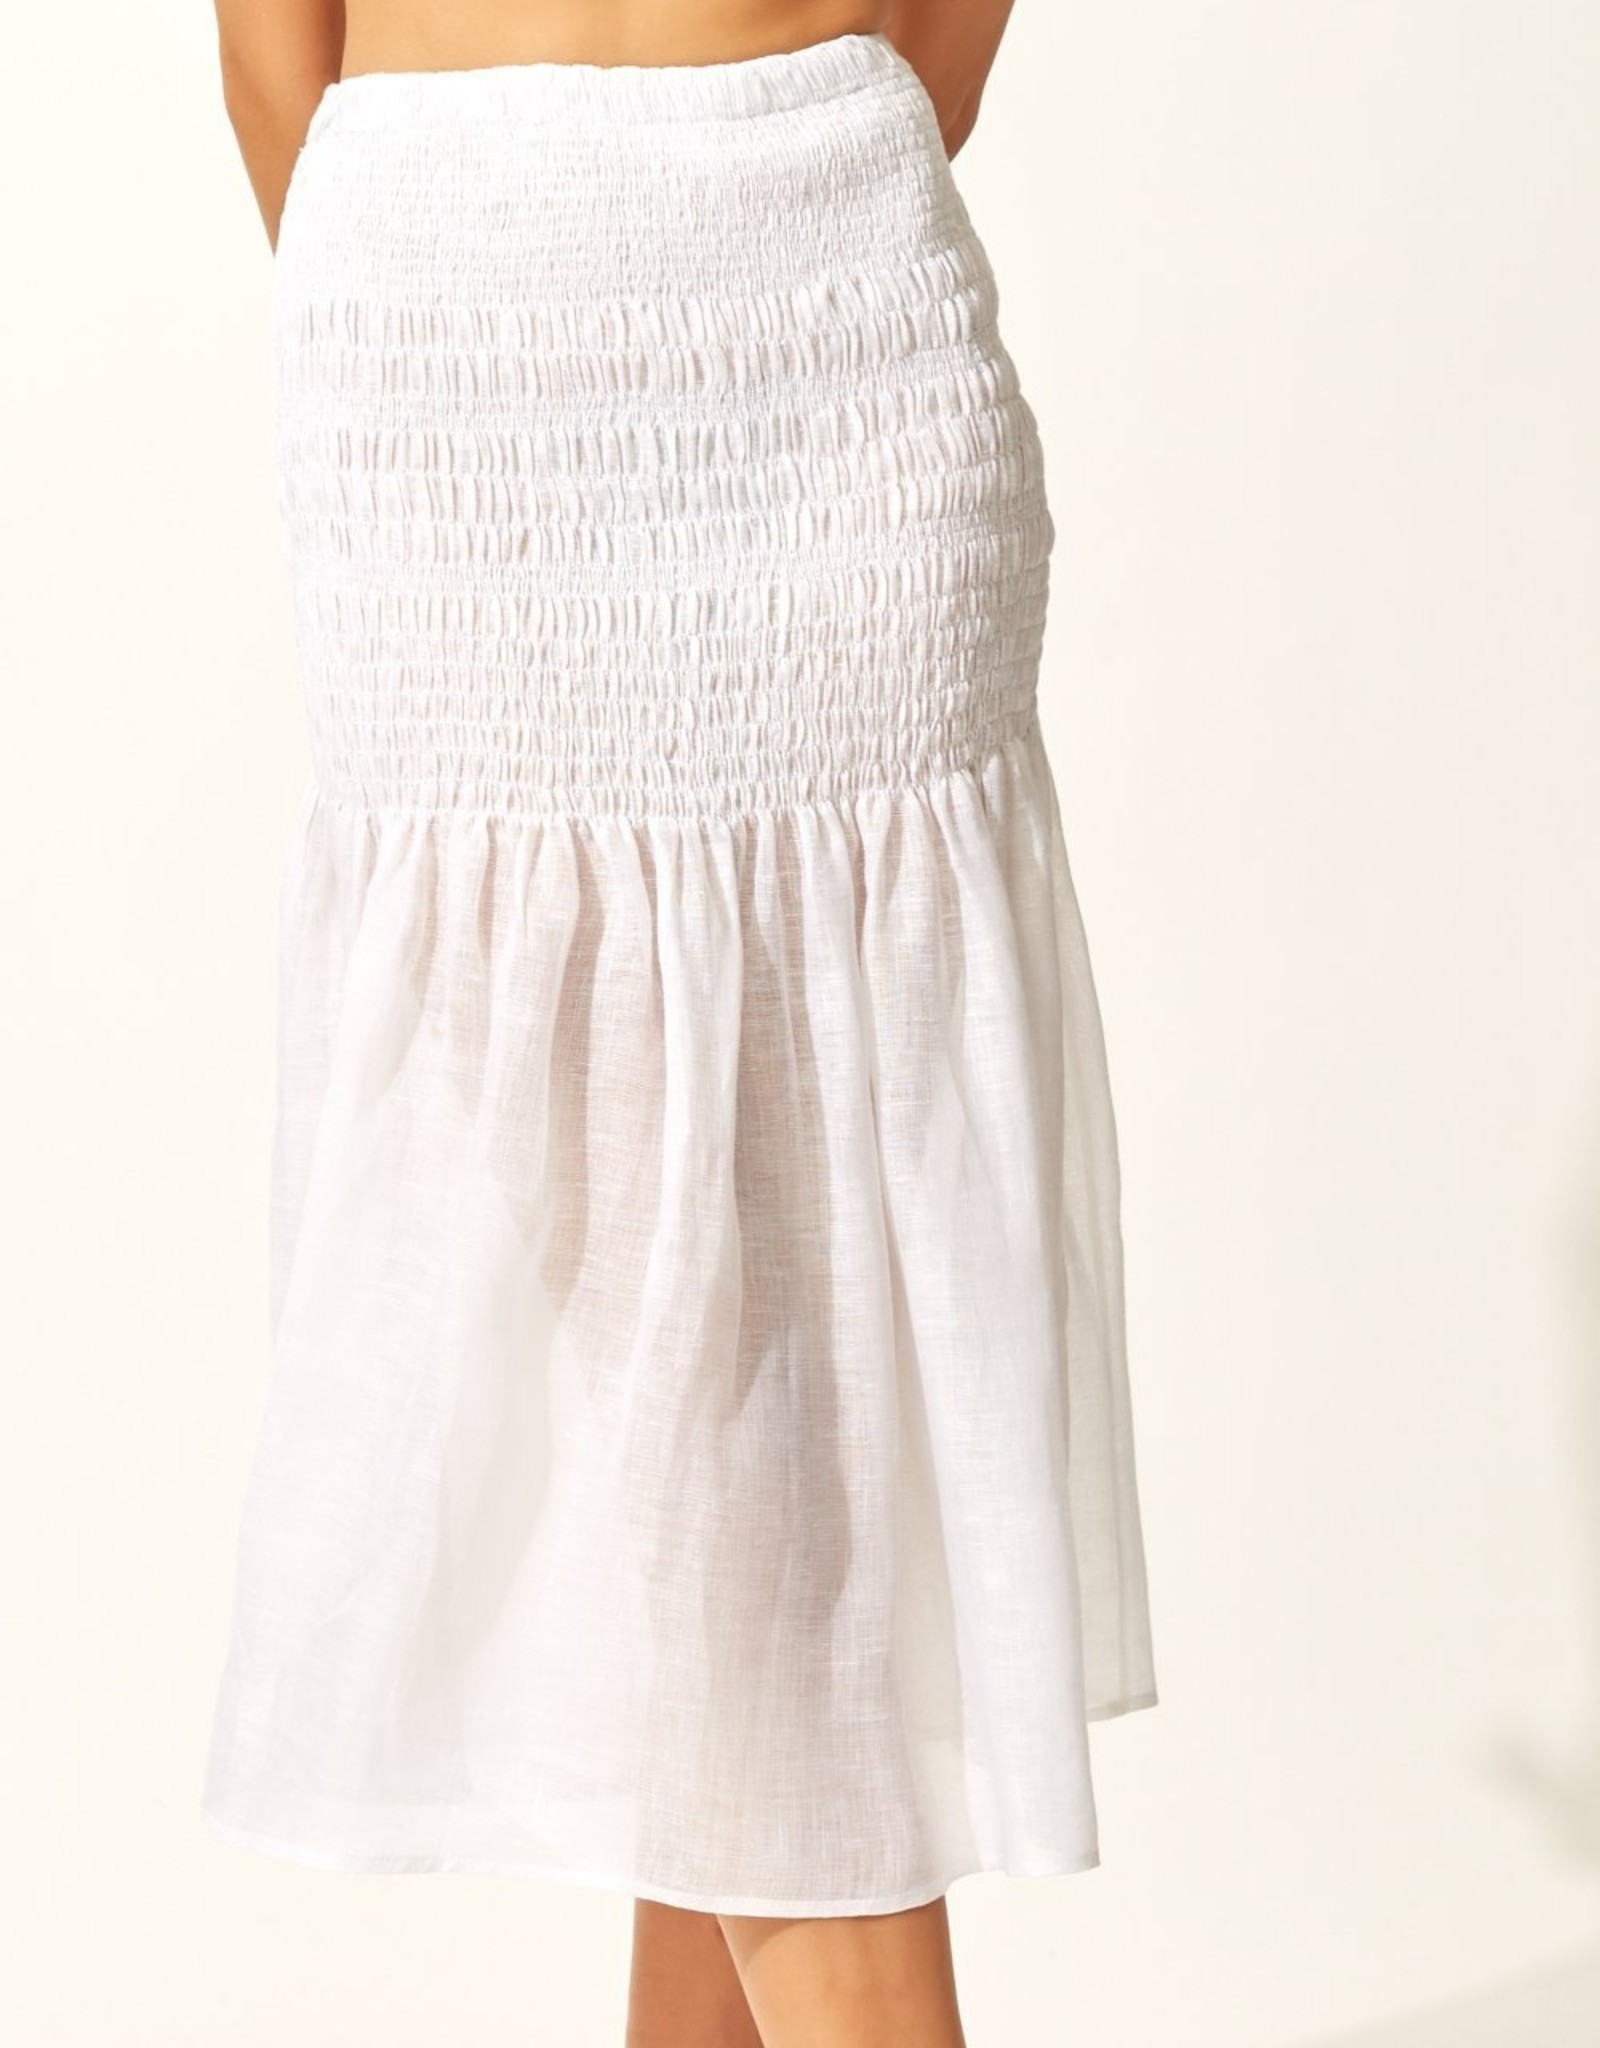 Solid & Striped White Smocked Skirt